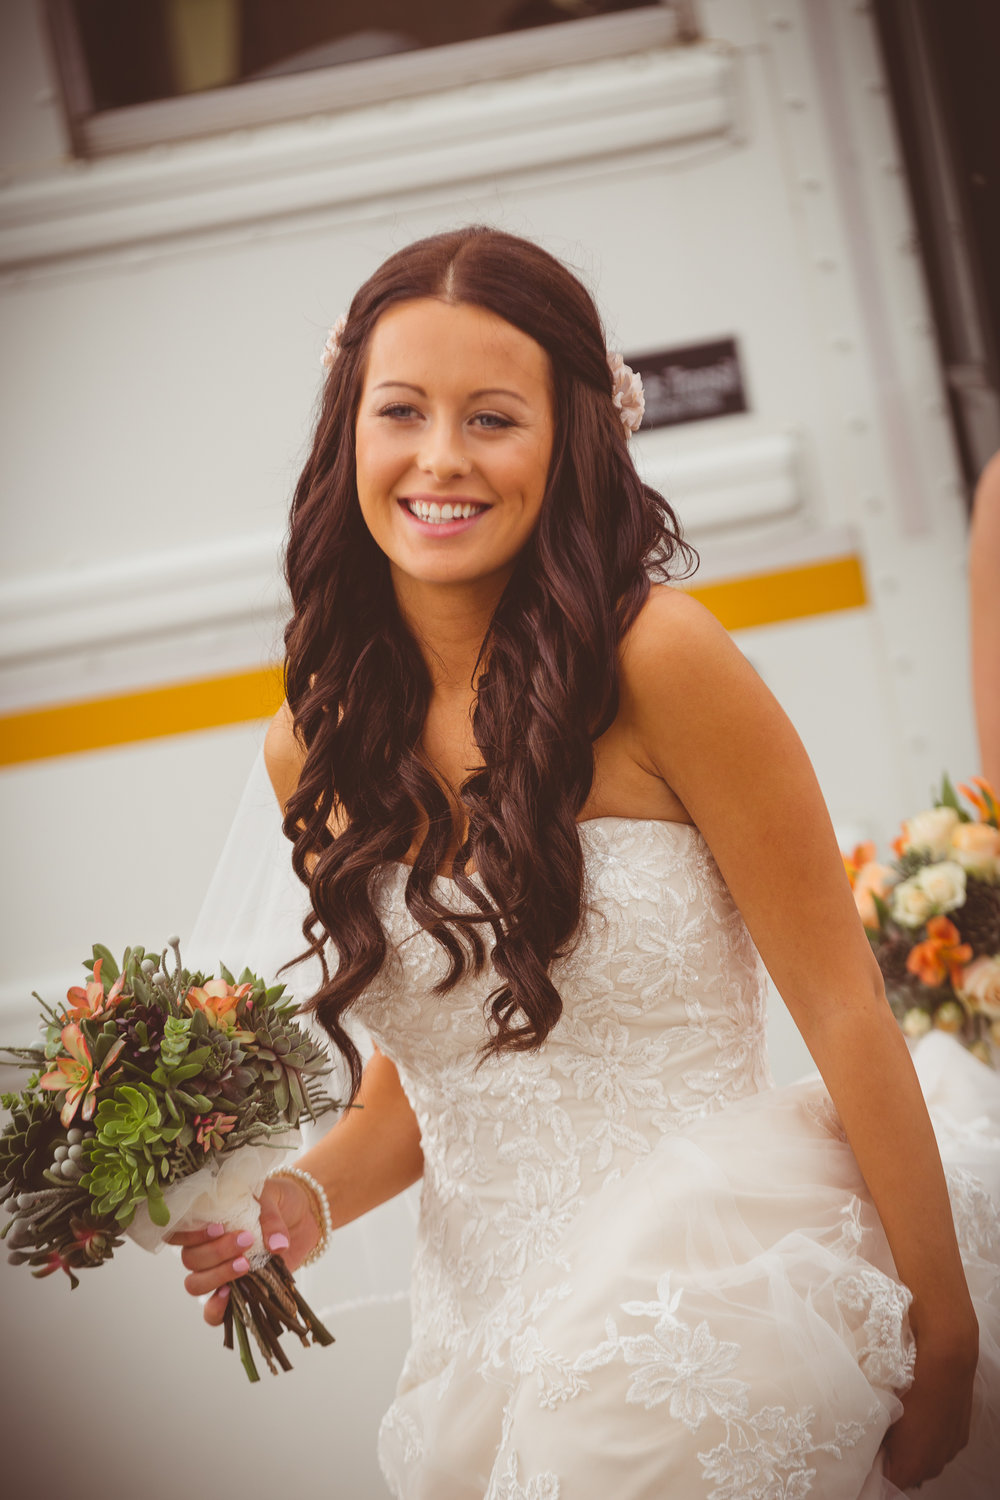 September 13, 2014 Shayne-Charmaye Wedding 420.JPG